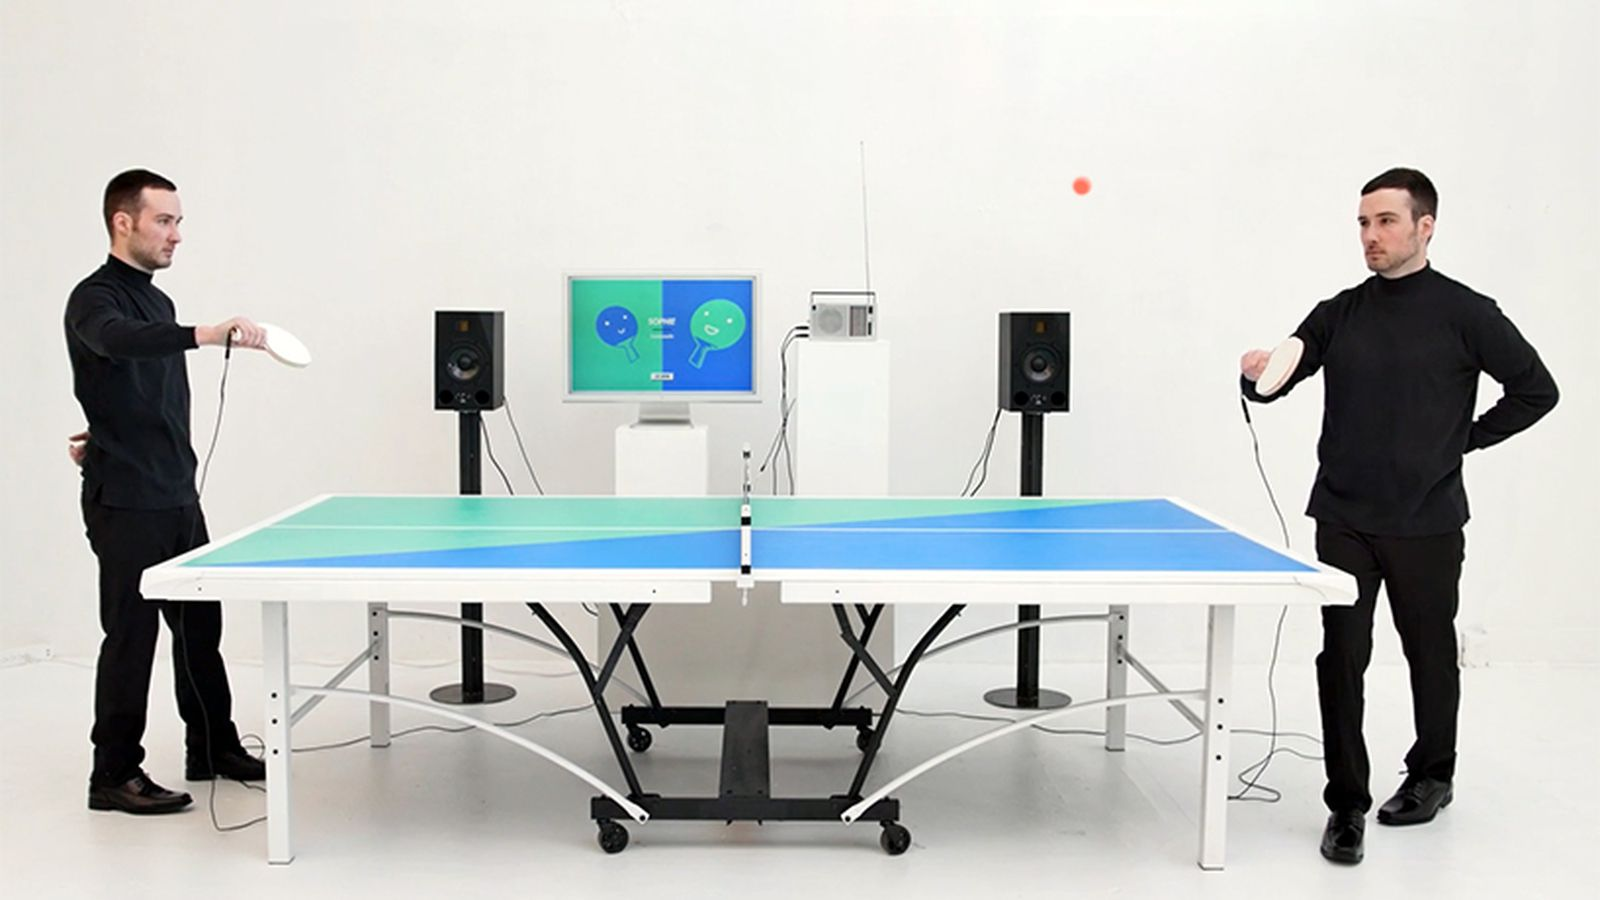 This ping pong table plays music to the rhythm of your for 10 x table song